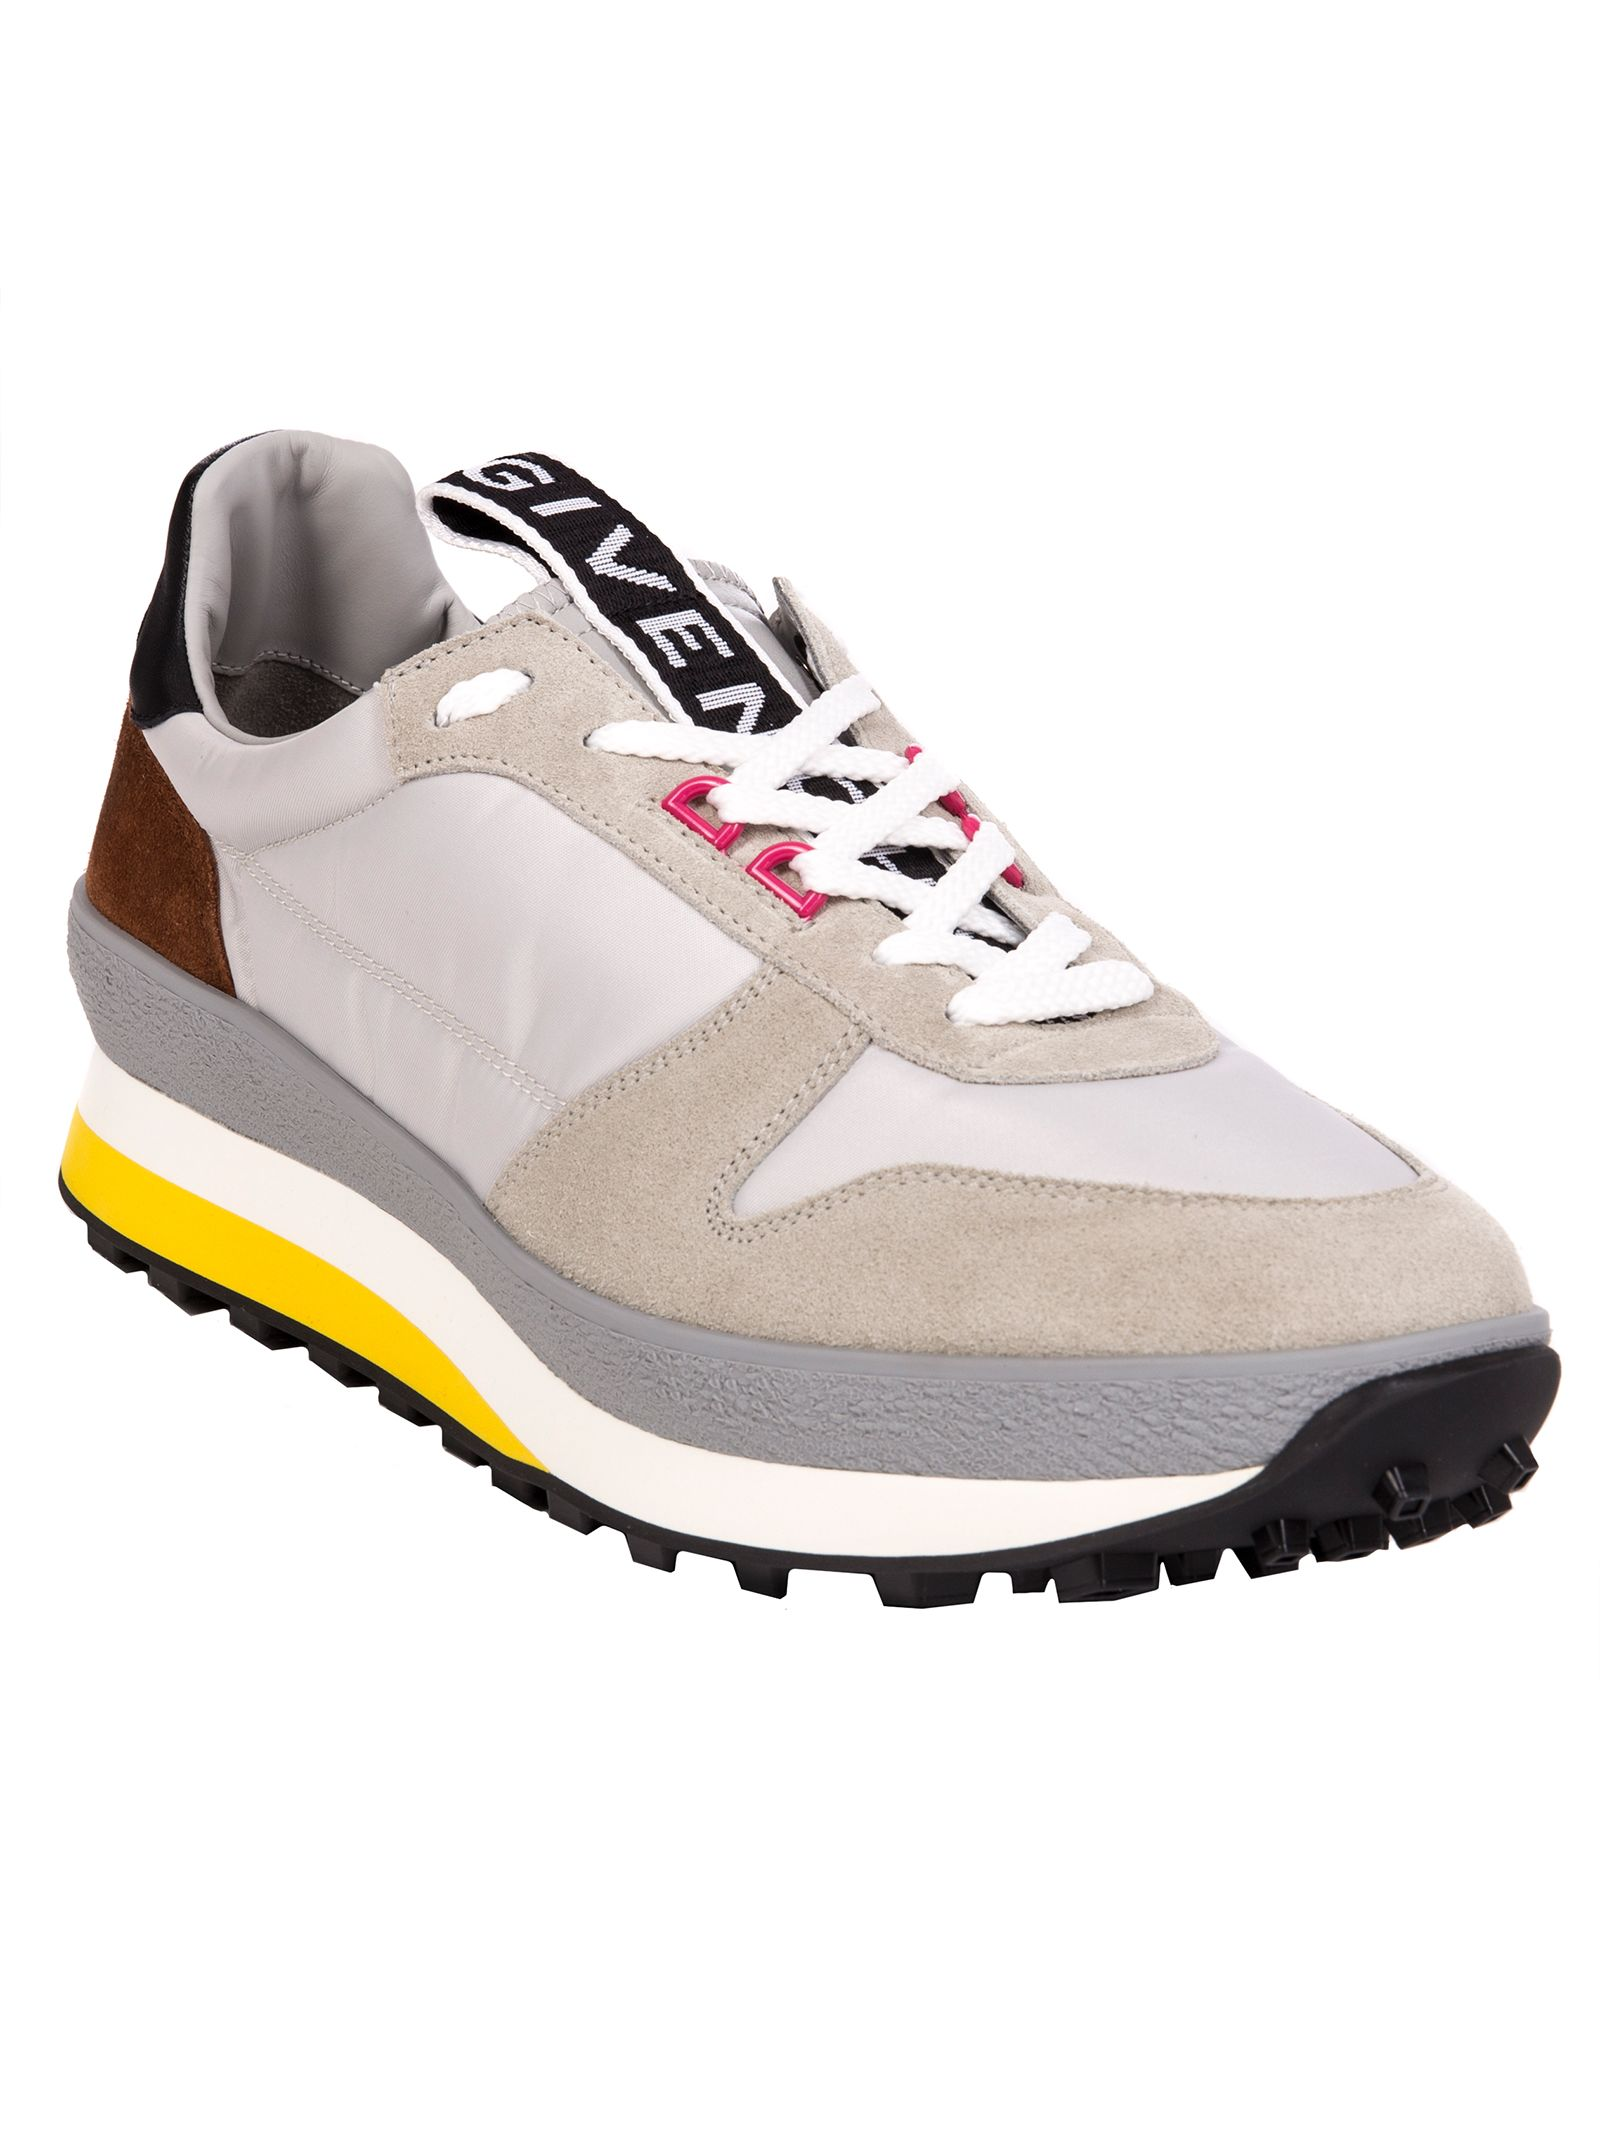 GIVENCHY T3 RUNNER SNEAKERS IN GREY AND YELLOW